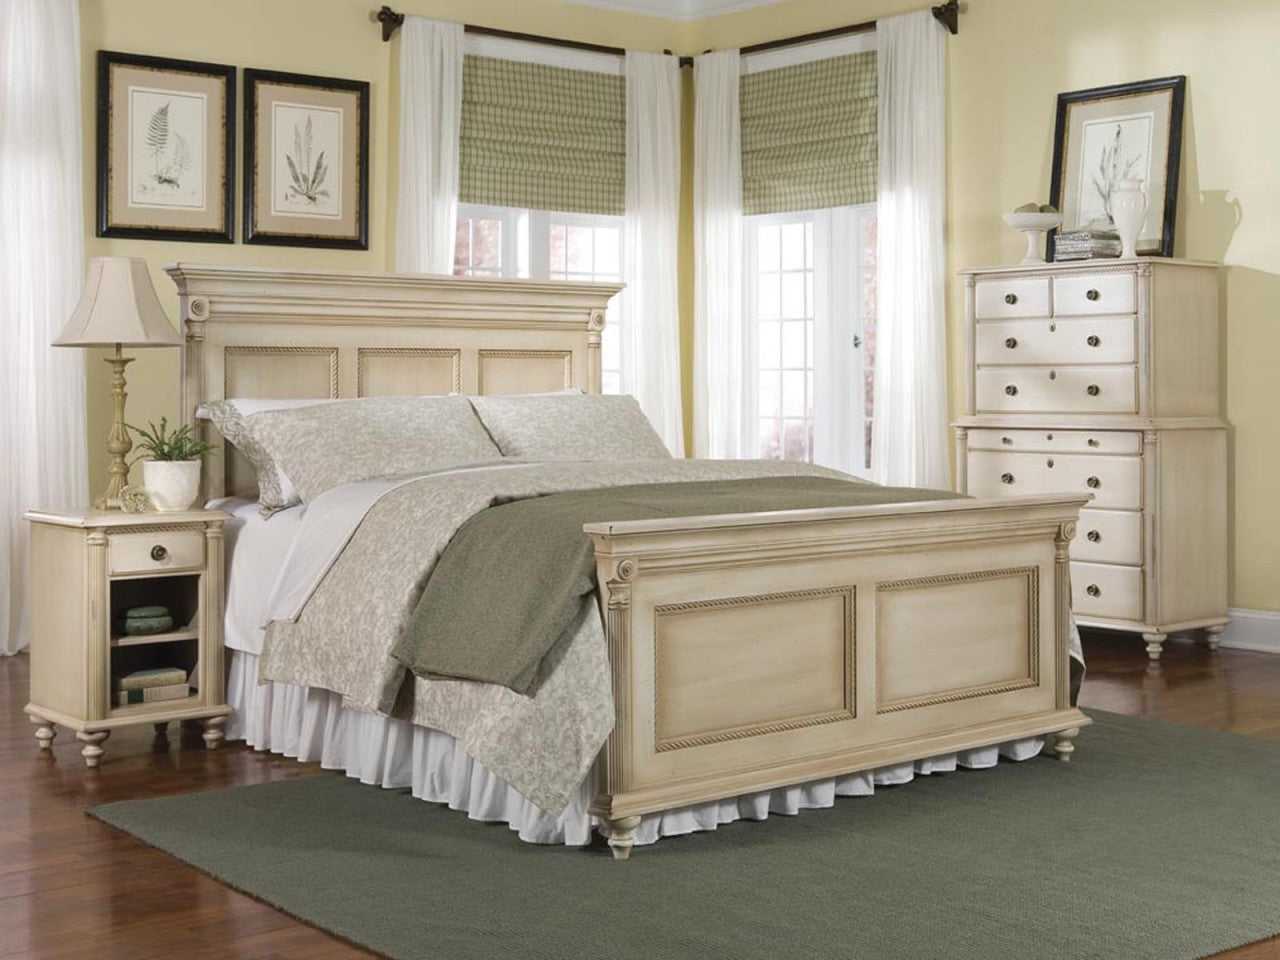 cream bedroom ideas terrys fabrics 39 s blog